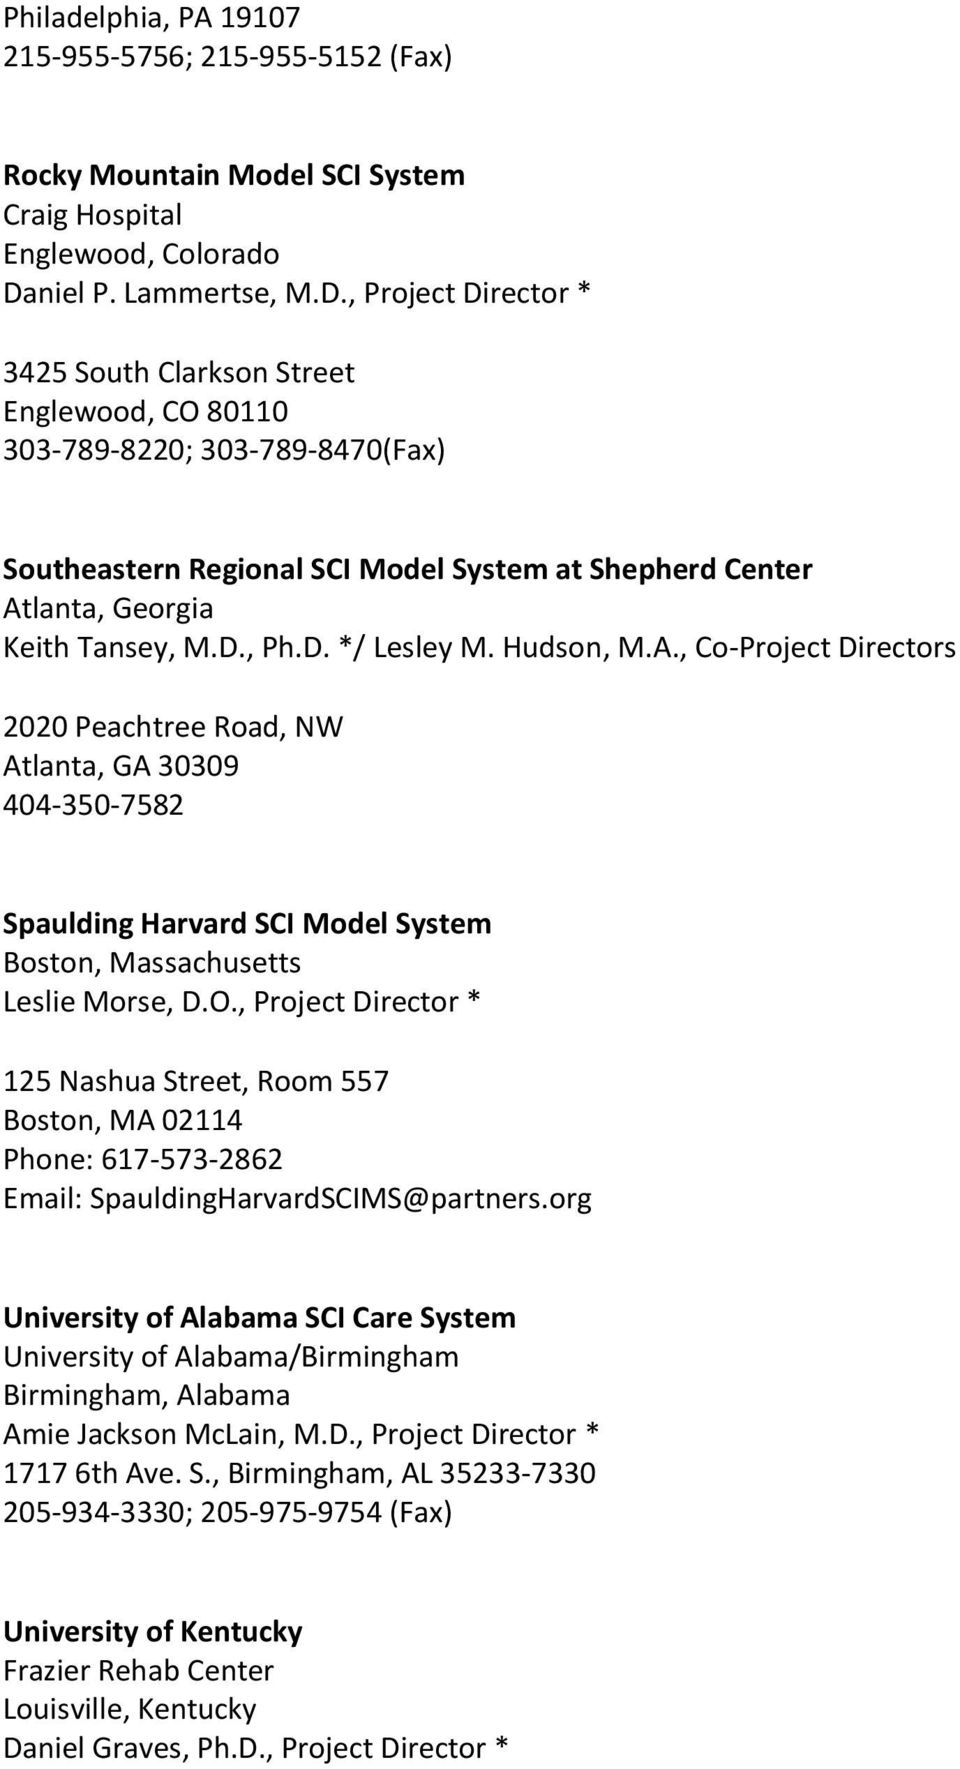 , Project Director * 3425 South Clarkson Street Englewood, CO 80110 303-789-8220; 303-789-8470(Fax) Southeastern Regional SCI Model System at Shepherd Center Atlanta, Georgia Keith Tansey, M.D., Ph.D. */ Lesley M.